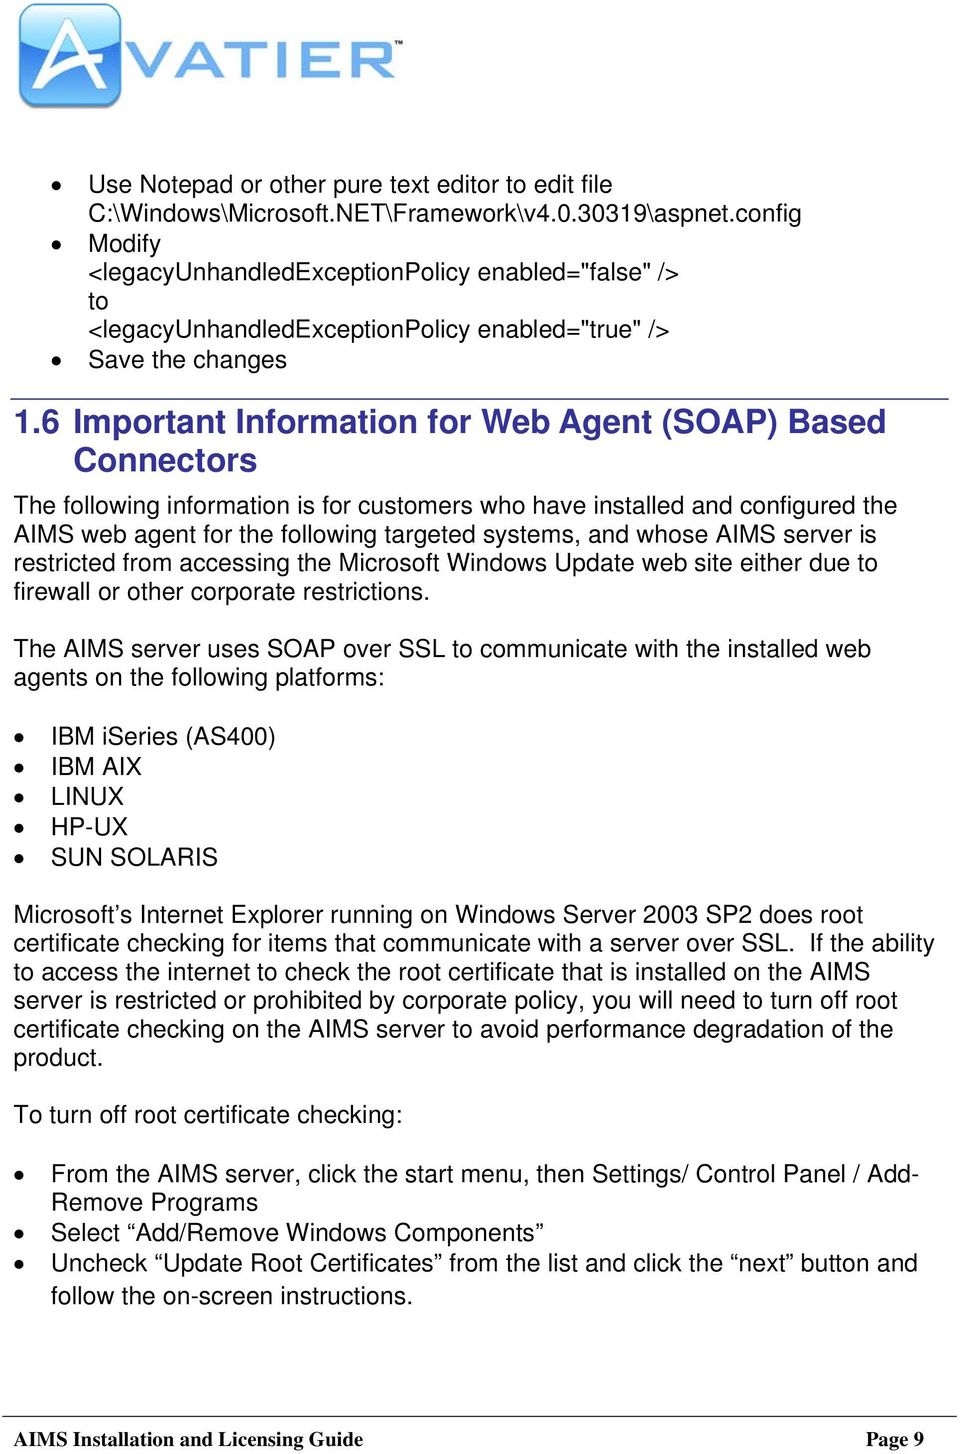 6 Important Information for Web Agent (SOAP) Based Connectors The following information is for customers who have installed and configured the AIMS web agent for the following targeted systems, and